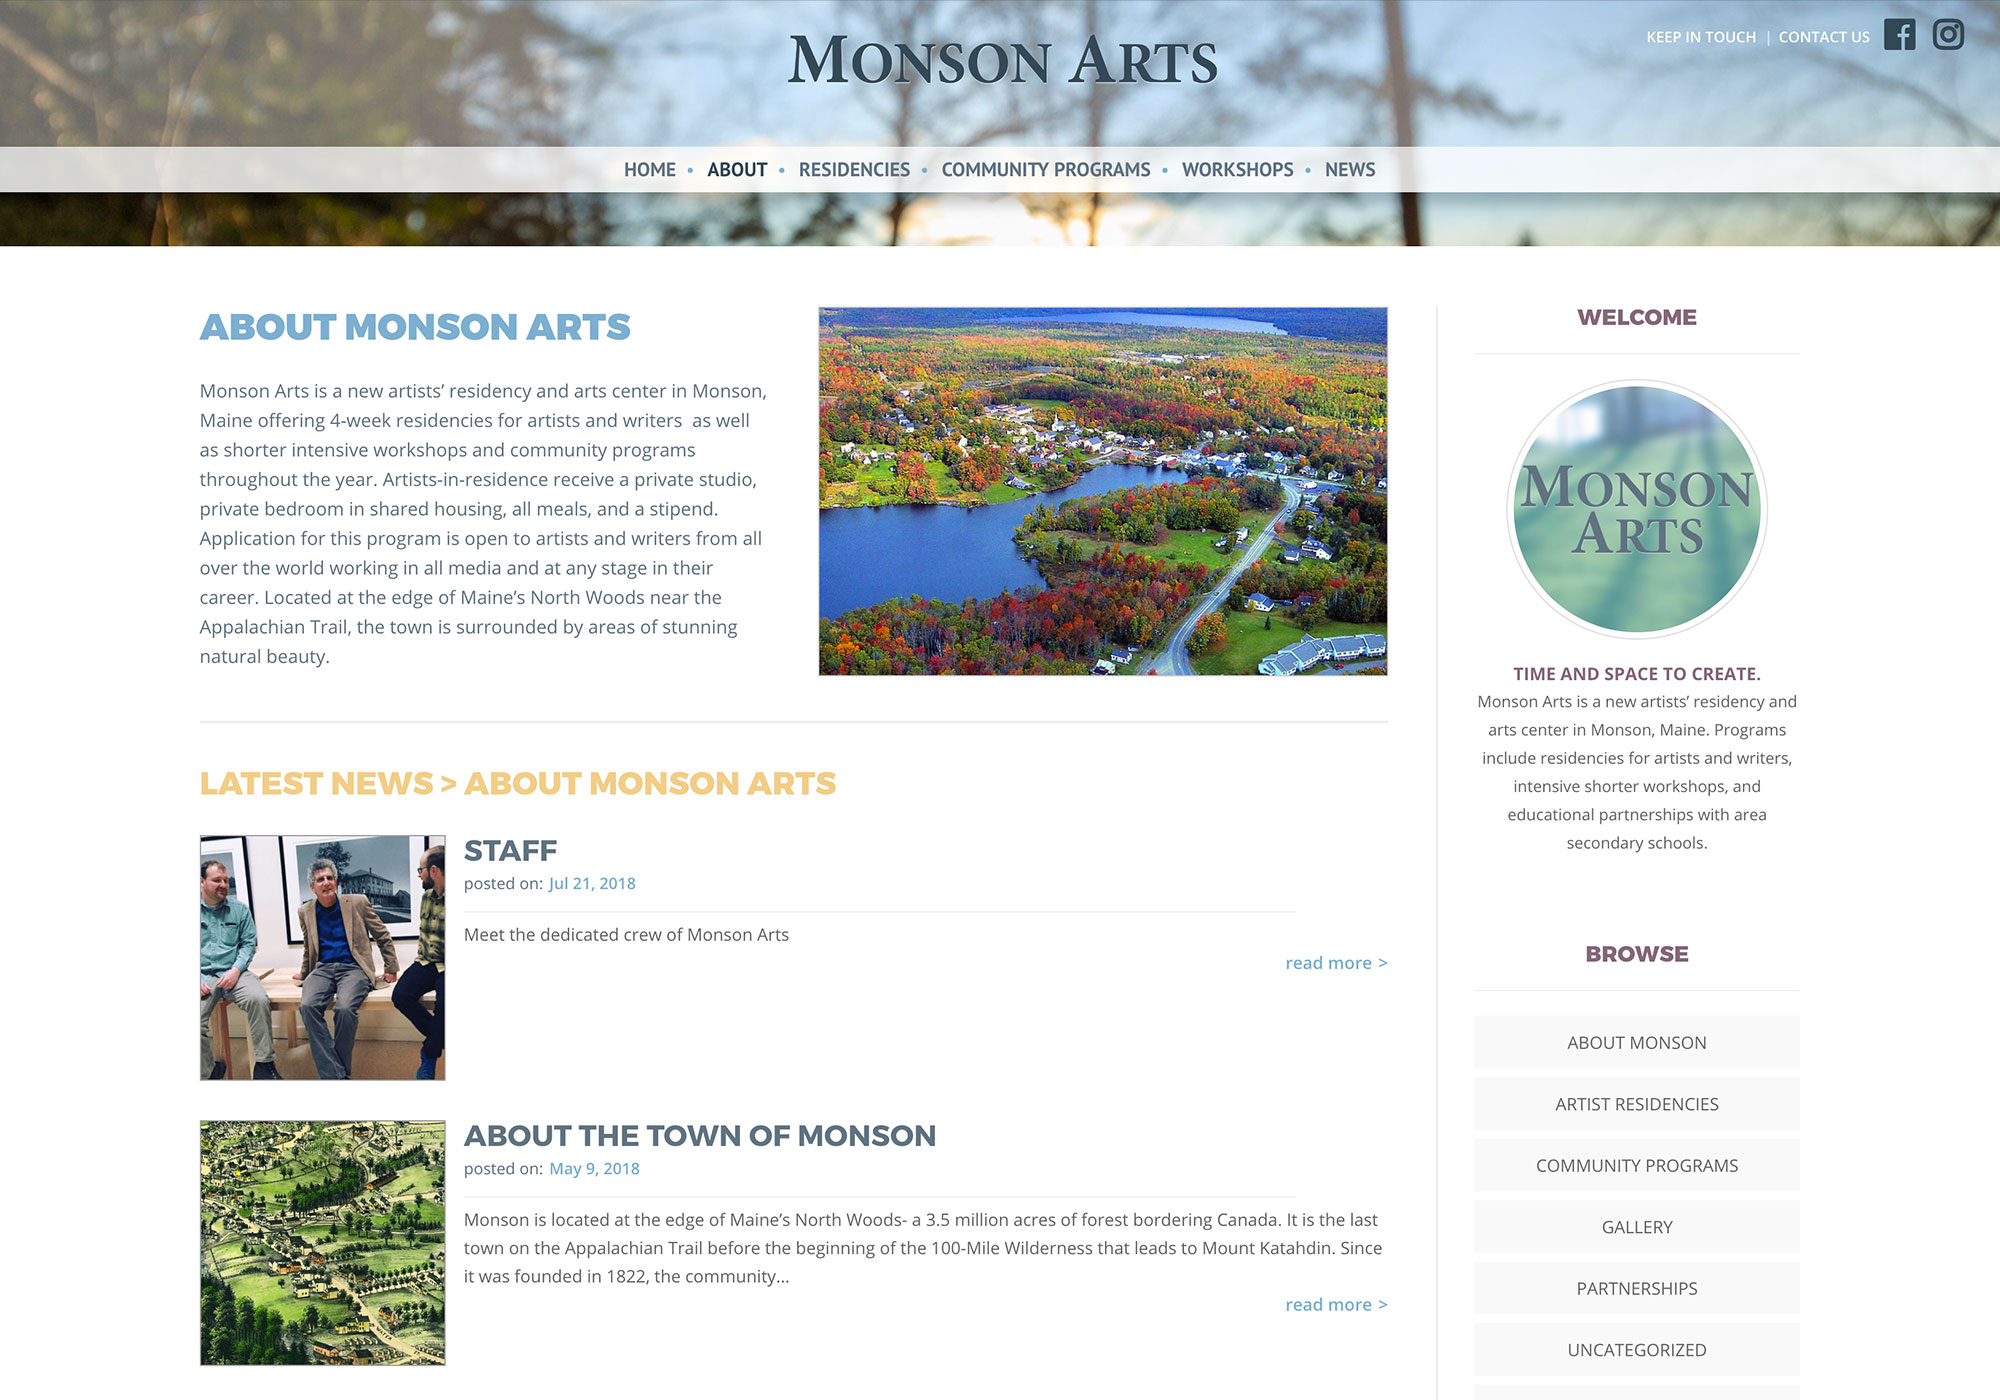 SlickFish Studios from Portland, Maine built a website for a great Artist Residency and Arts Center in rural Monson, Maine.